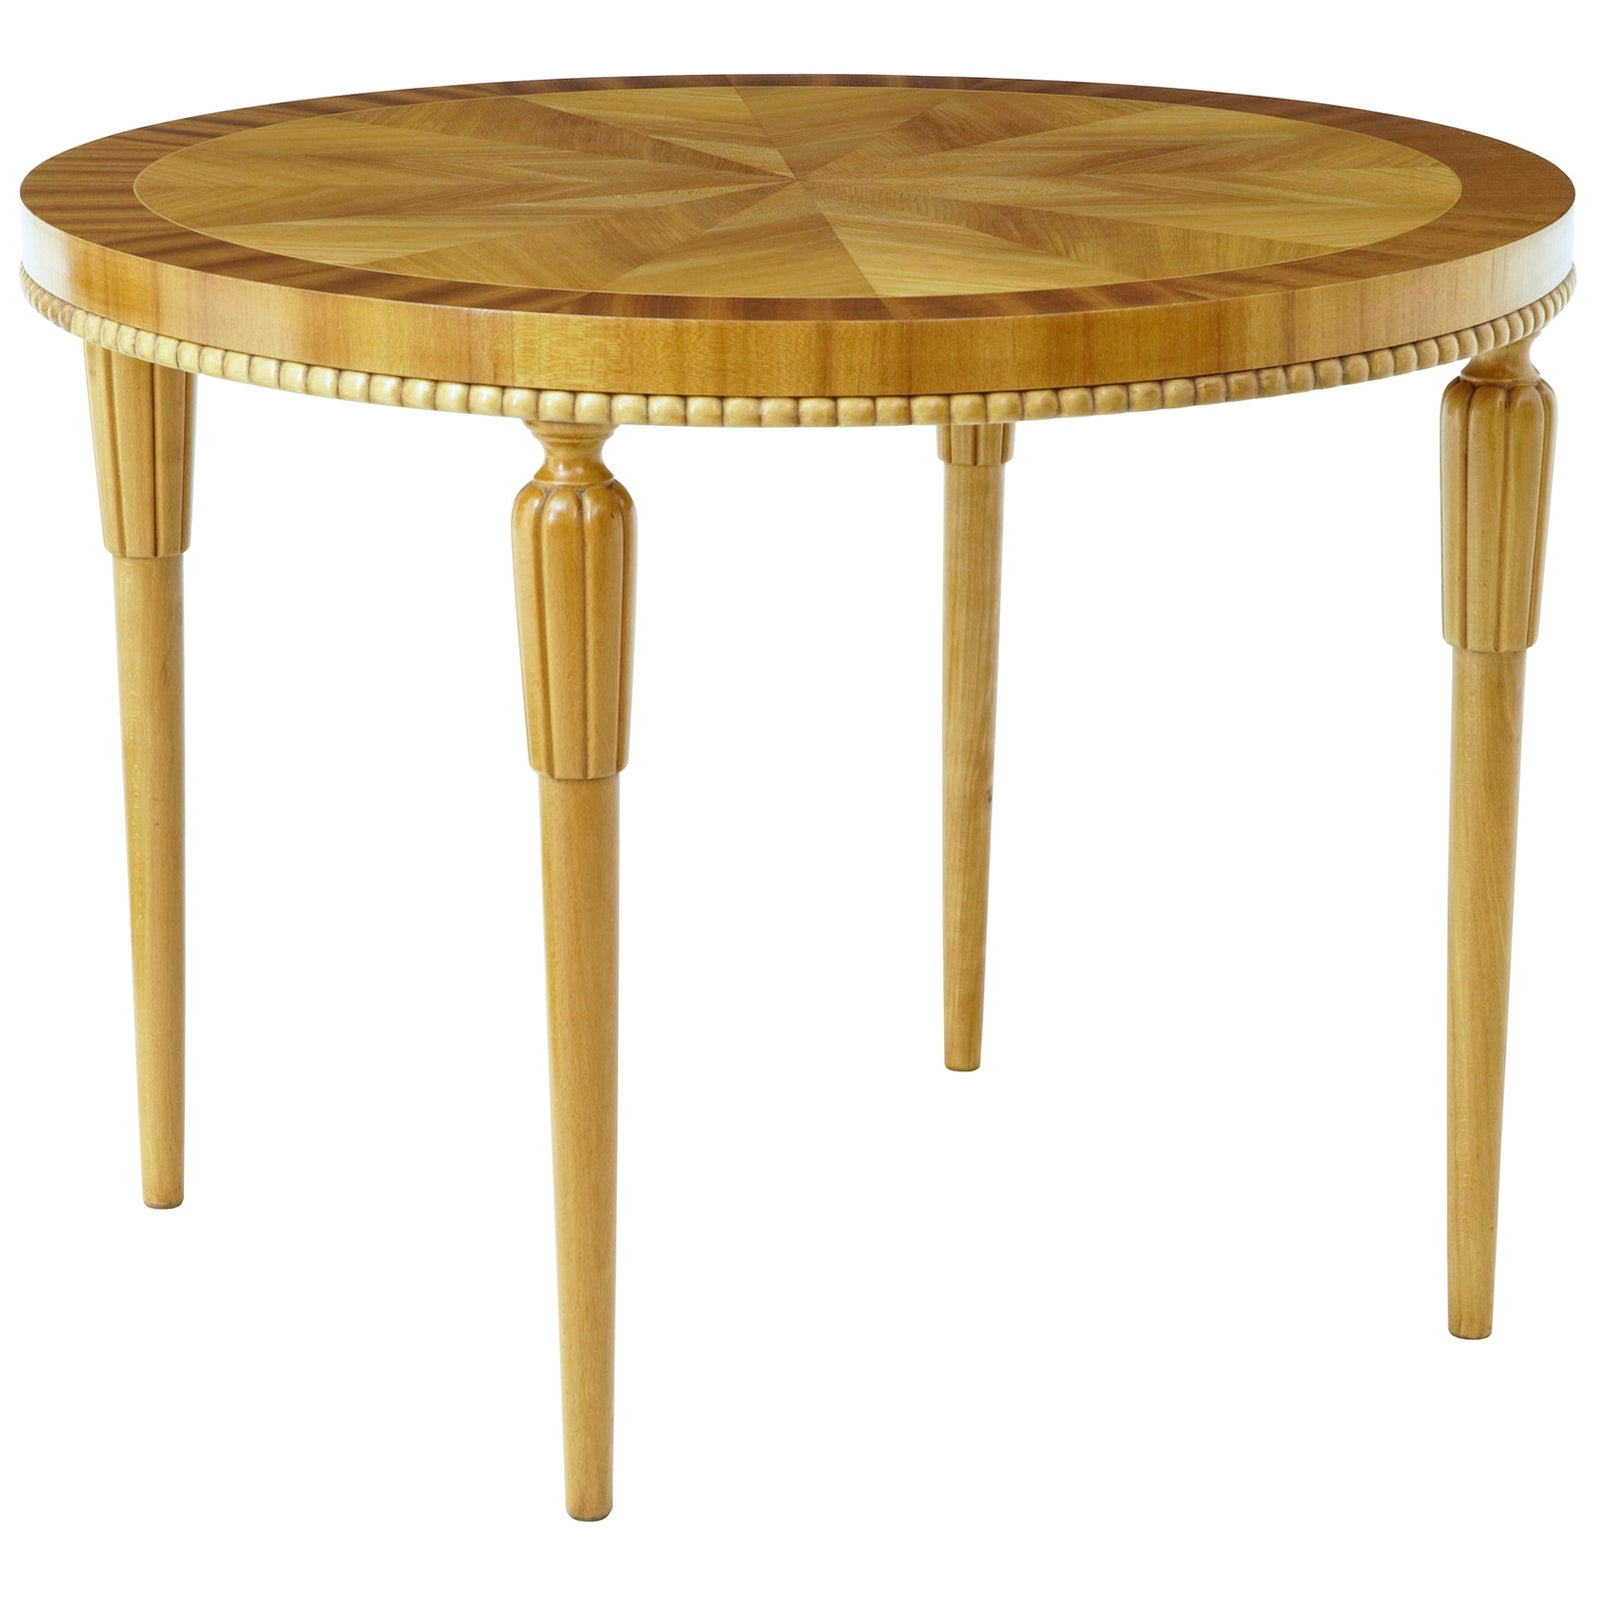 20th Century Art Deco Birch Coffee Table